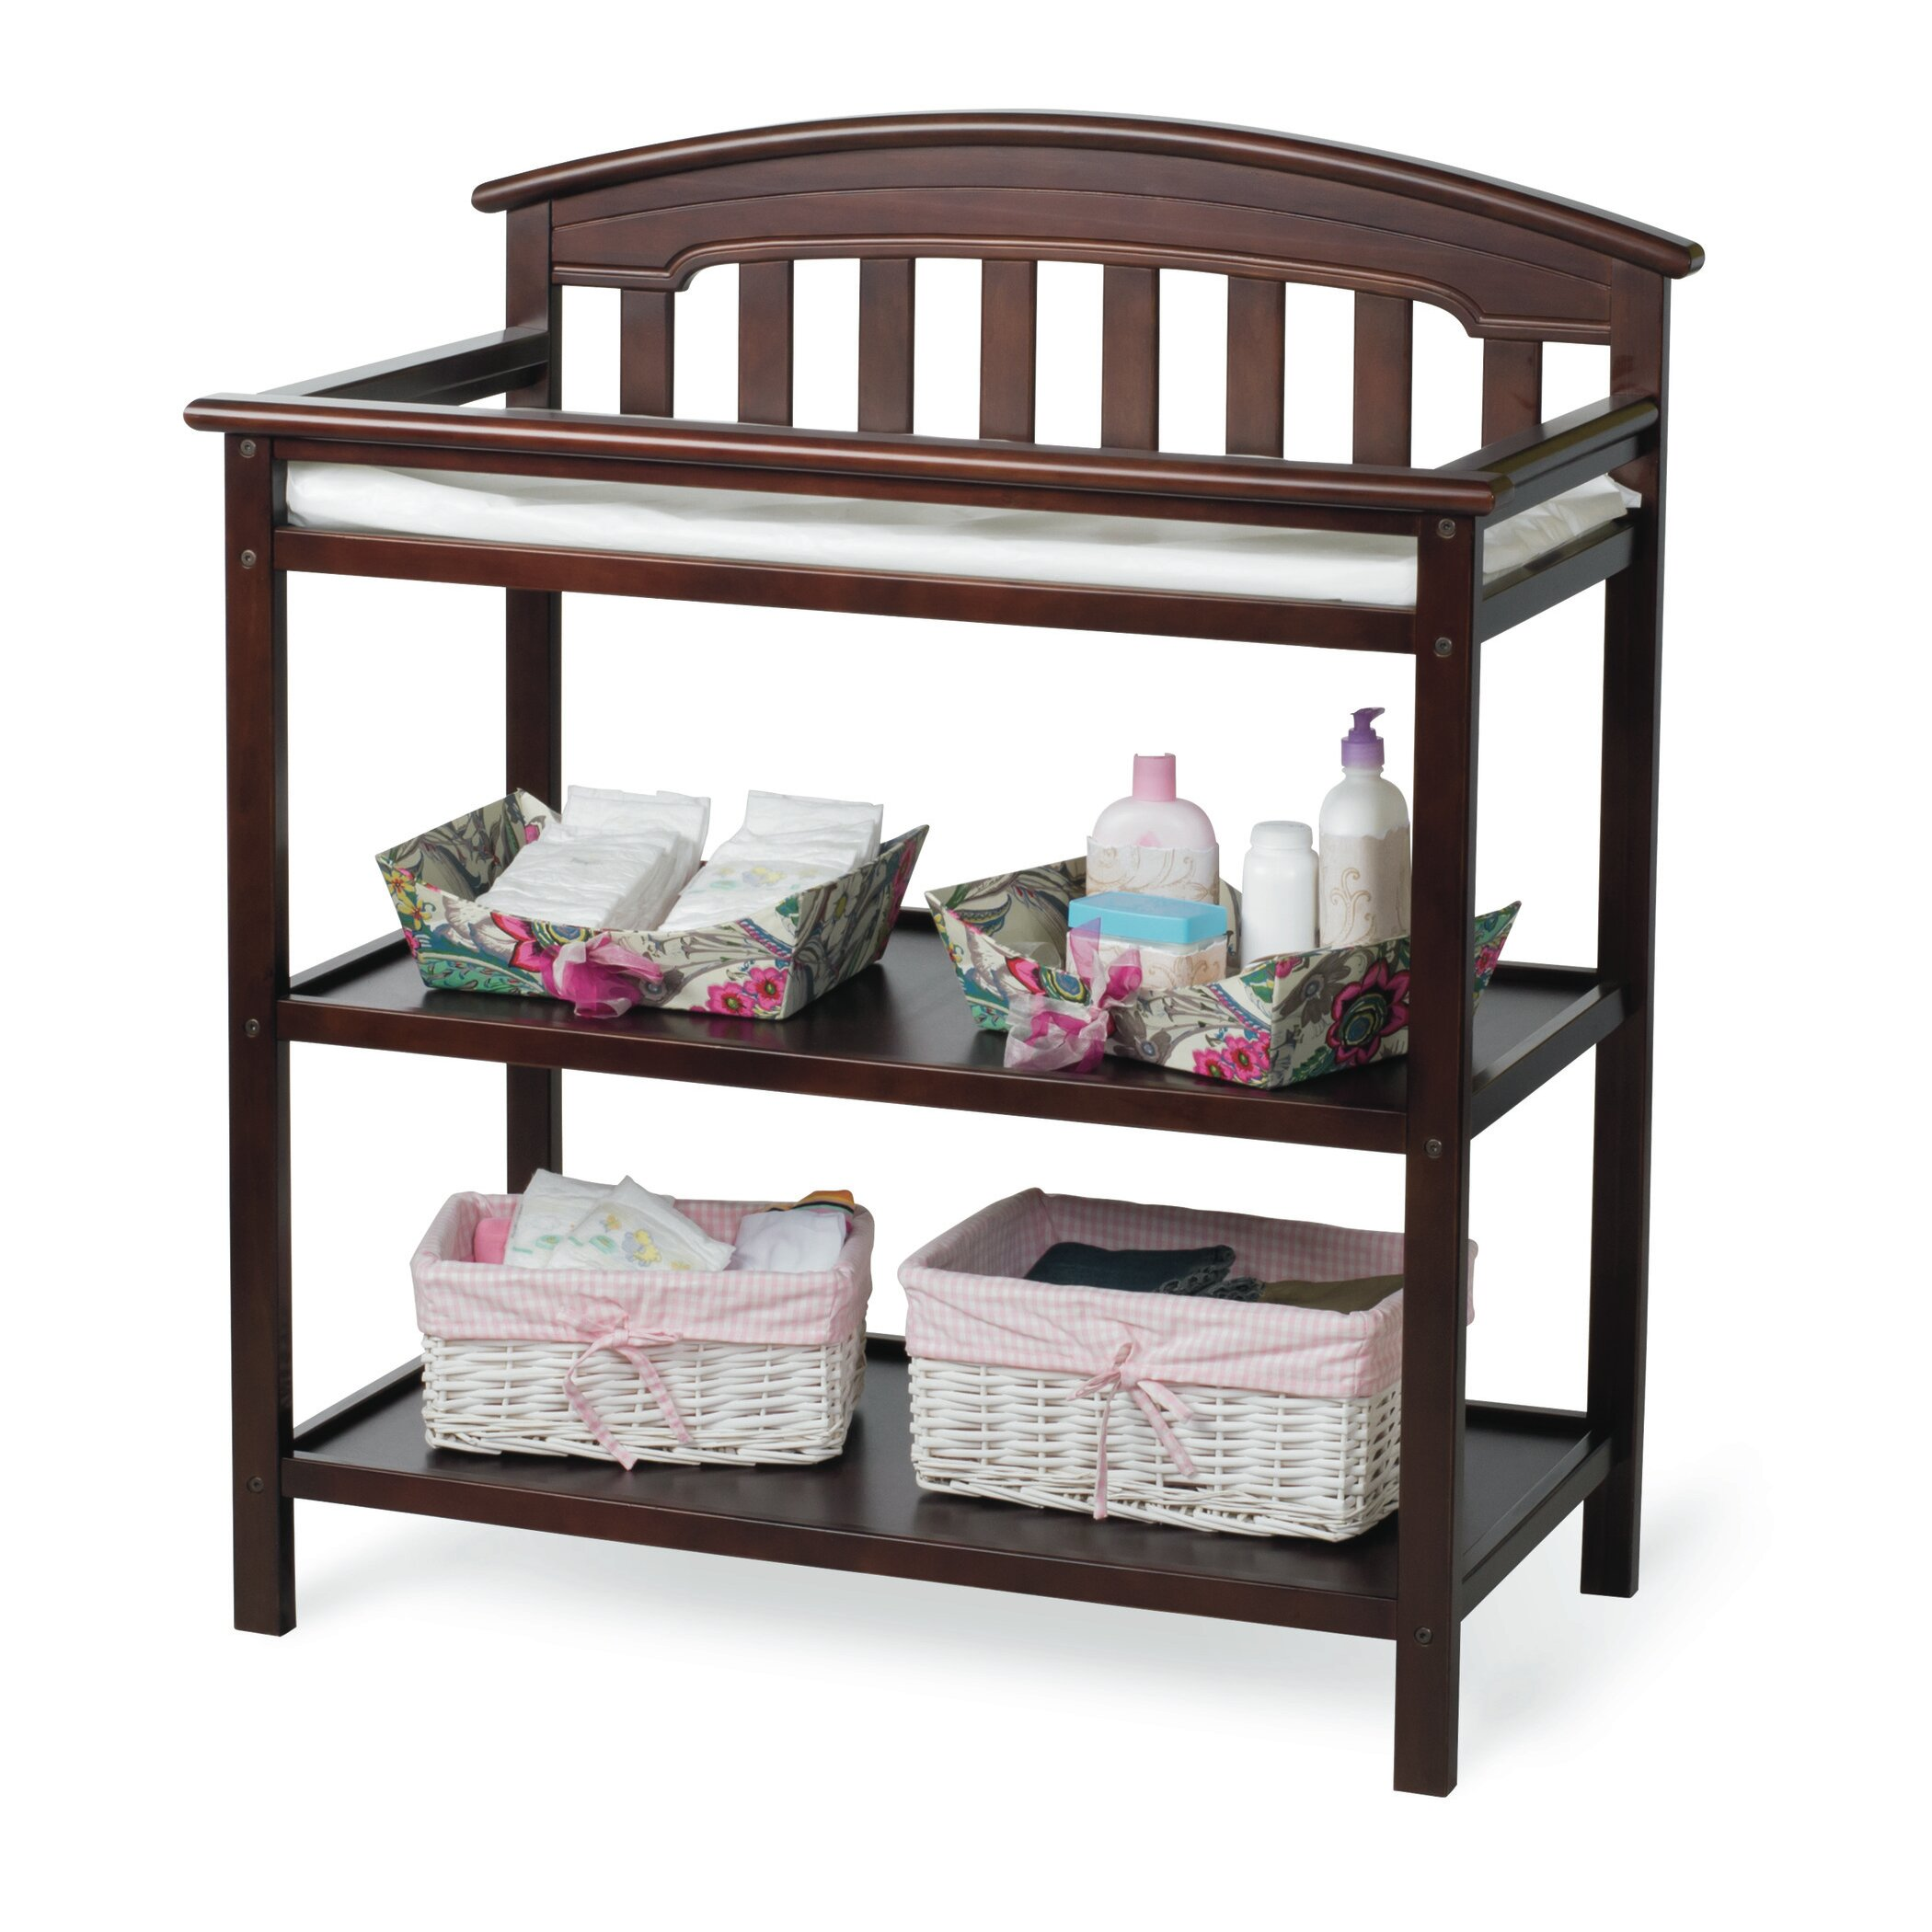 Stanford changing table wayfair for Child craft changing table